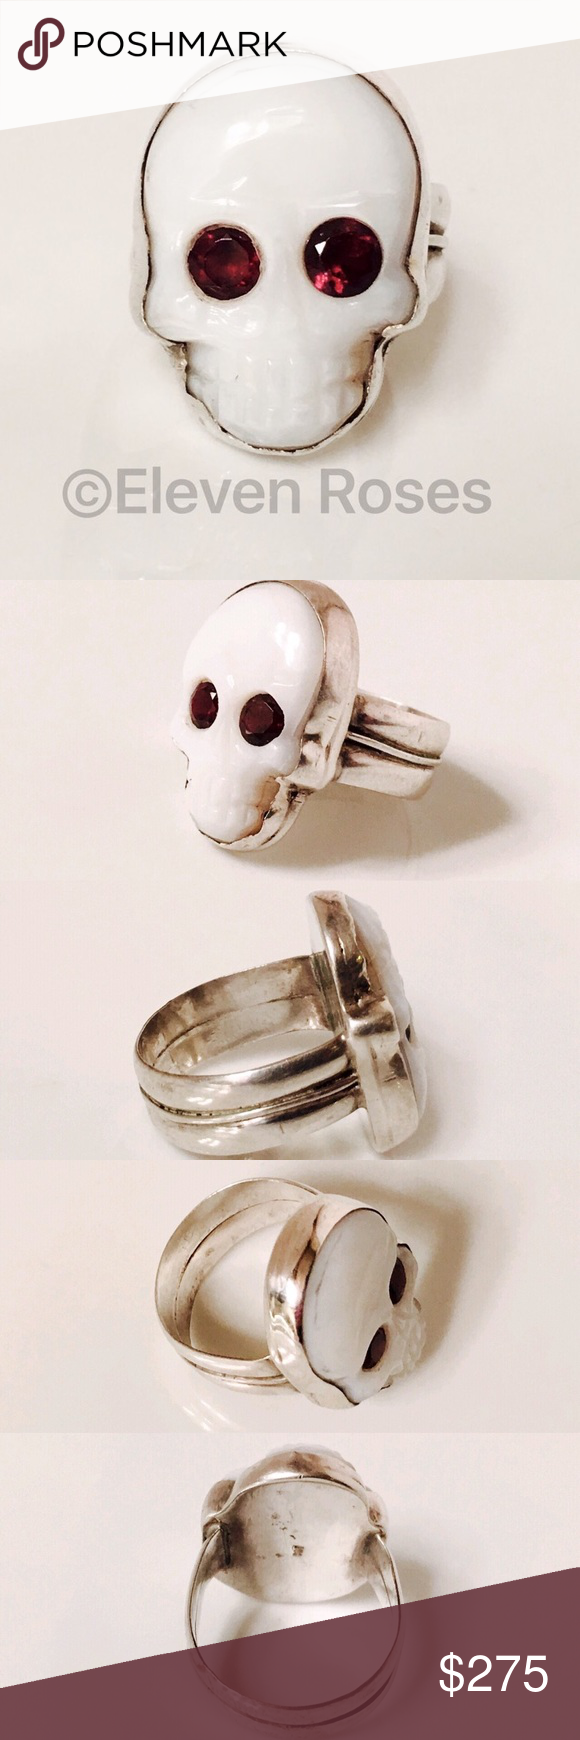 Men's Sterling White Agate & Garnet Skull Ring Large Heavy Skull Statement Ring - 925 Sterling Silver - Carved White Agate Skull - Garnet Gemstone Eyes - Weighs Approx 18 Grams - US Size 10.5 - (Duplicate Listing For 'Men's' Search Criteria) Accessories Jewelry